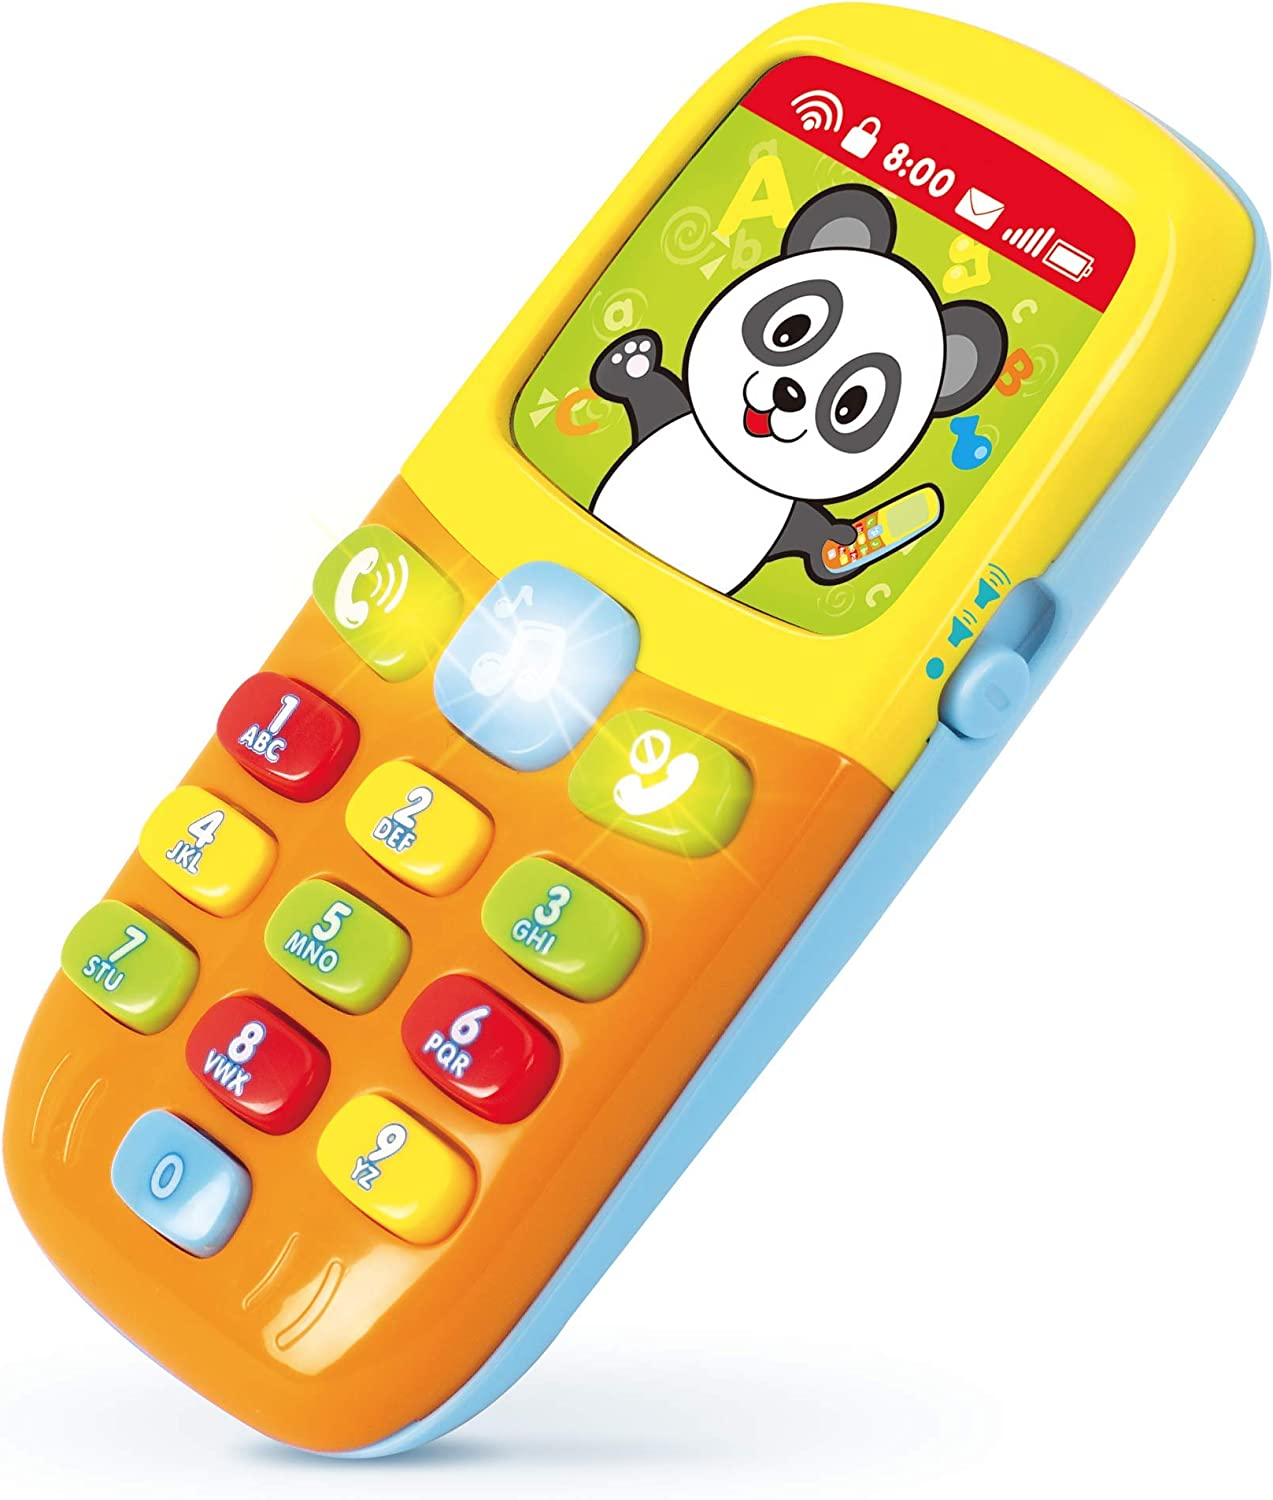 KIDS MUSIC MOBILE PHONE CHILD CELL TOYS LEARNING FUNCTION LIGHT SOUND FUNCTION